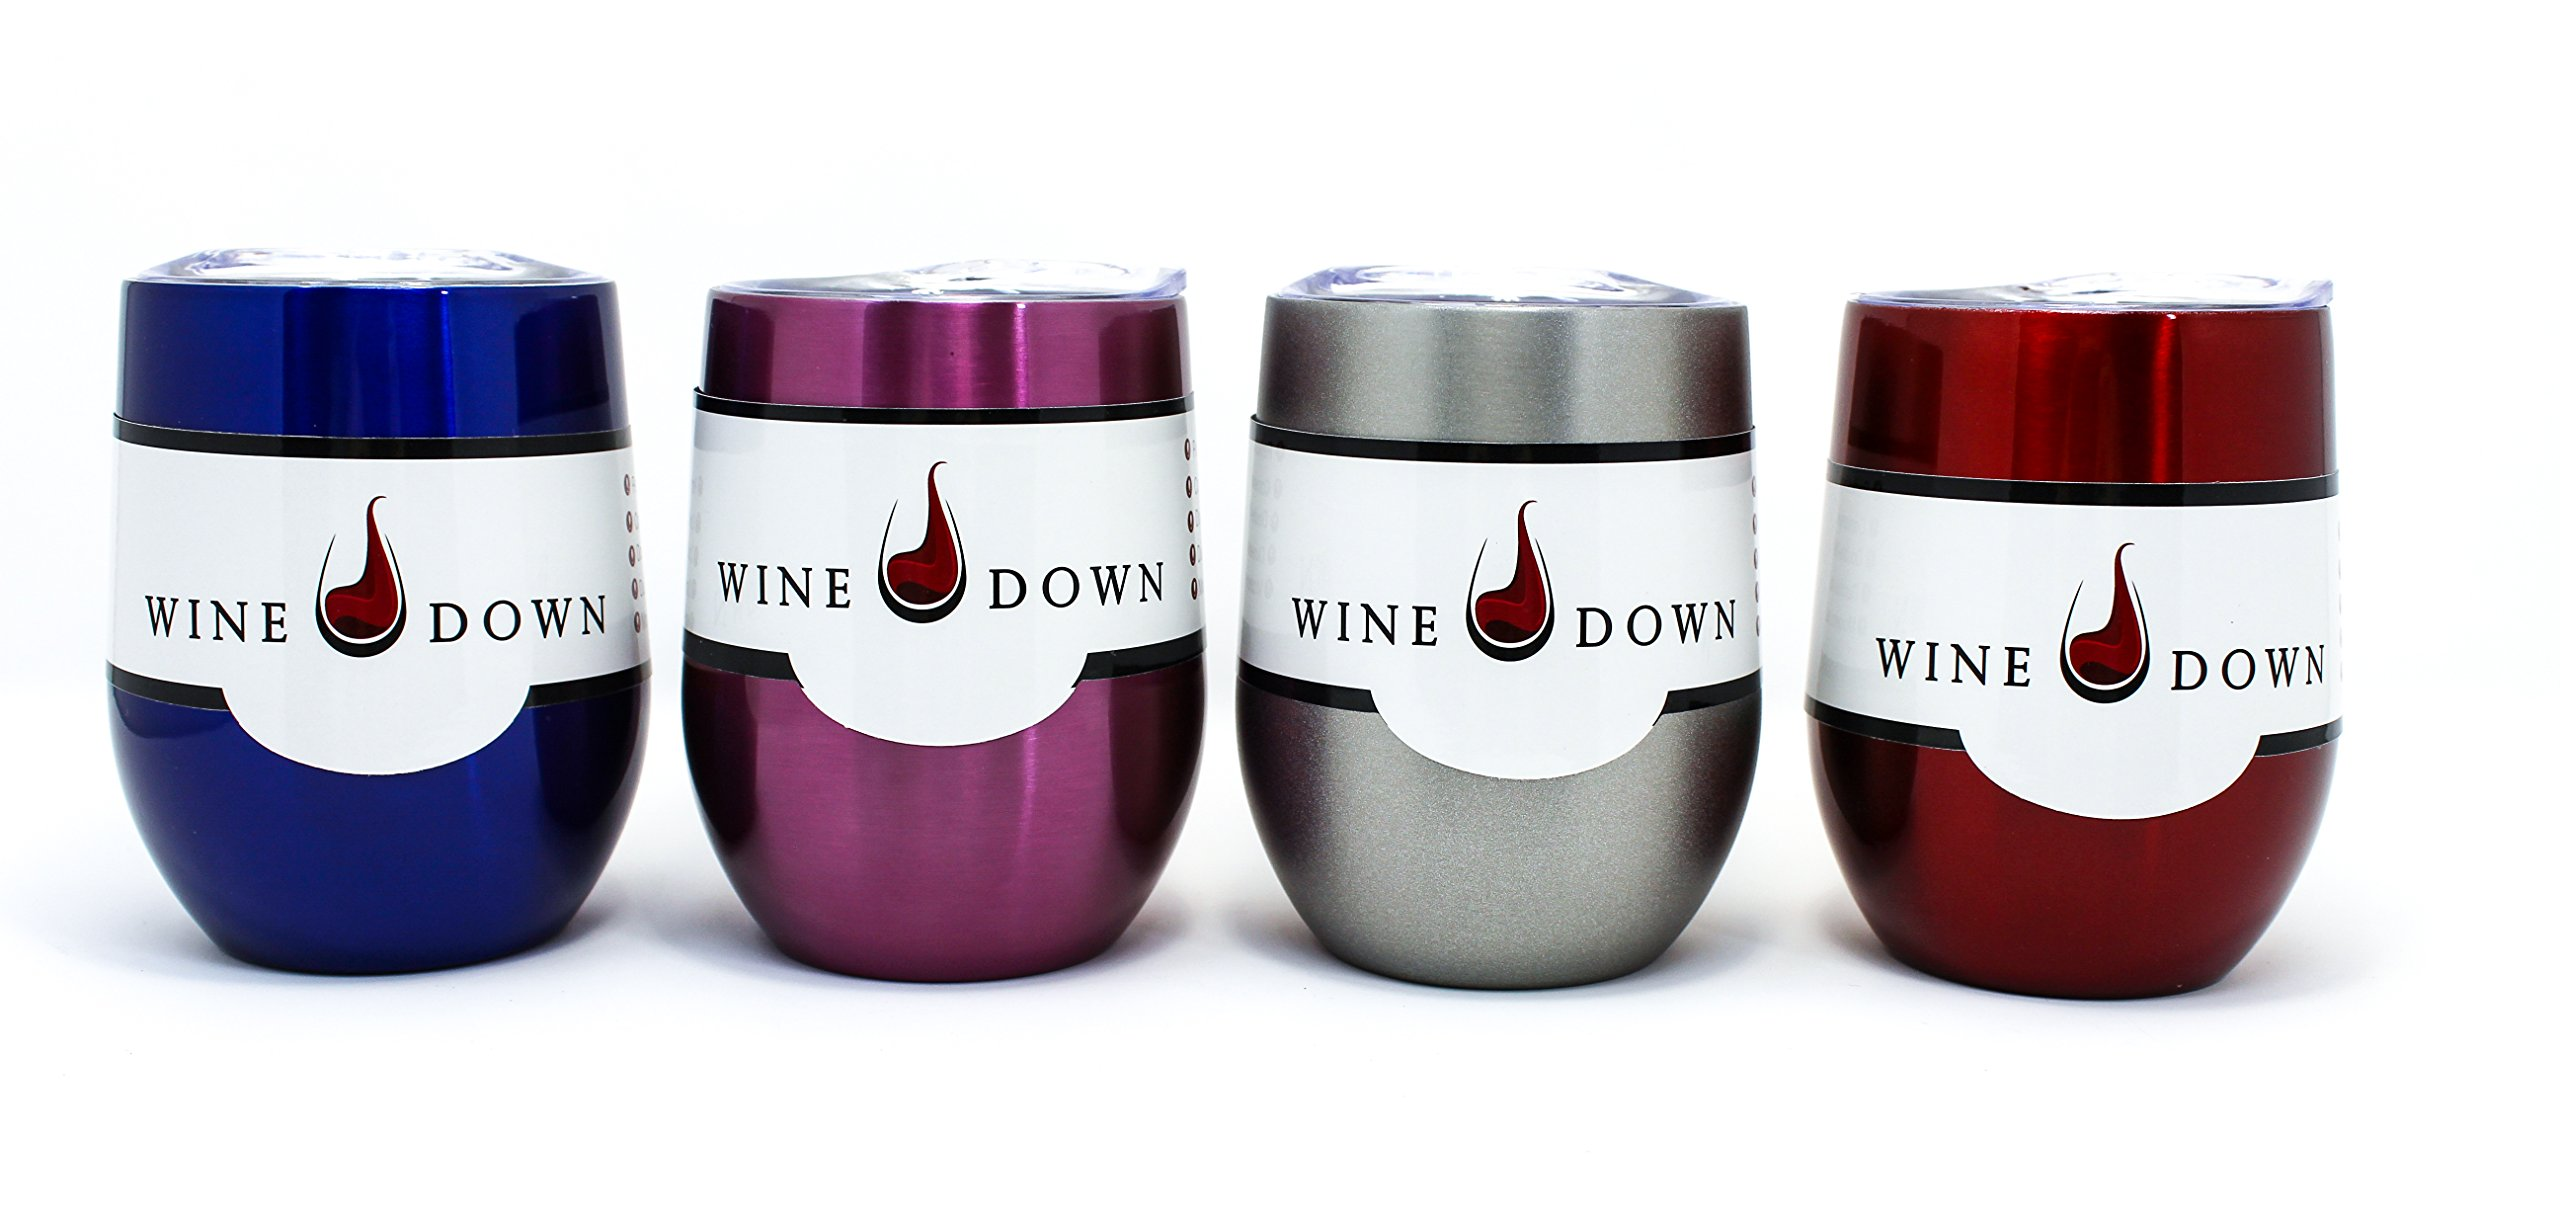 Wine Down 9 oz Stainless Steel Wine Glass Tumblers Eco-Friendly Clear Plastic Lid w/Rubber Seal Perfect for Outdoor Patios, Kitchen, Picnics, Car, Home, Travel, Students - (4 Pack Shiny Multi)